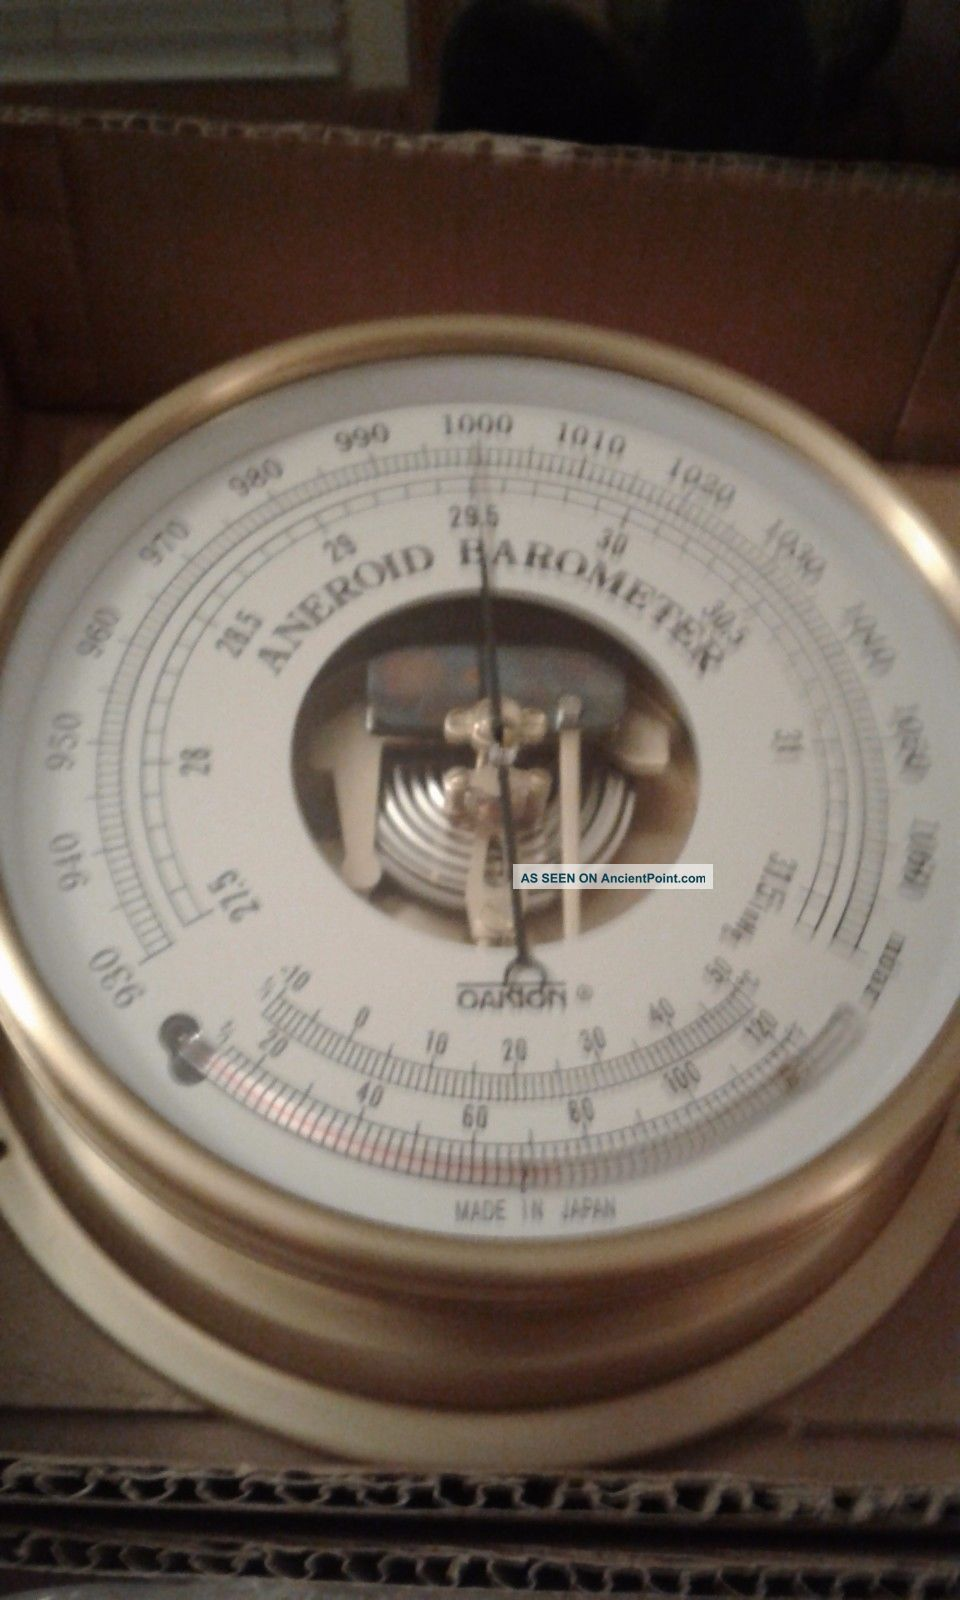 Oakton Wd - 03316 - 70 Aneroid Barometer, Barometers photo